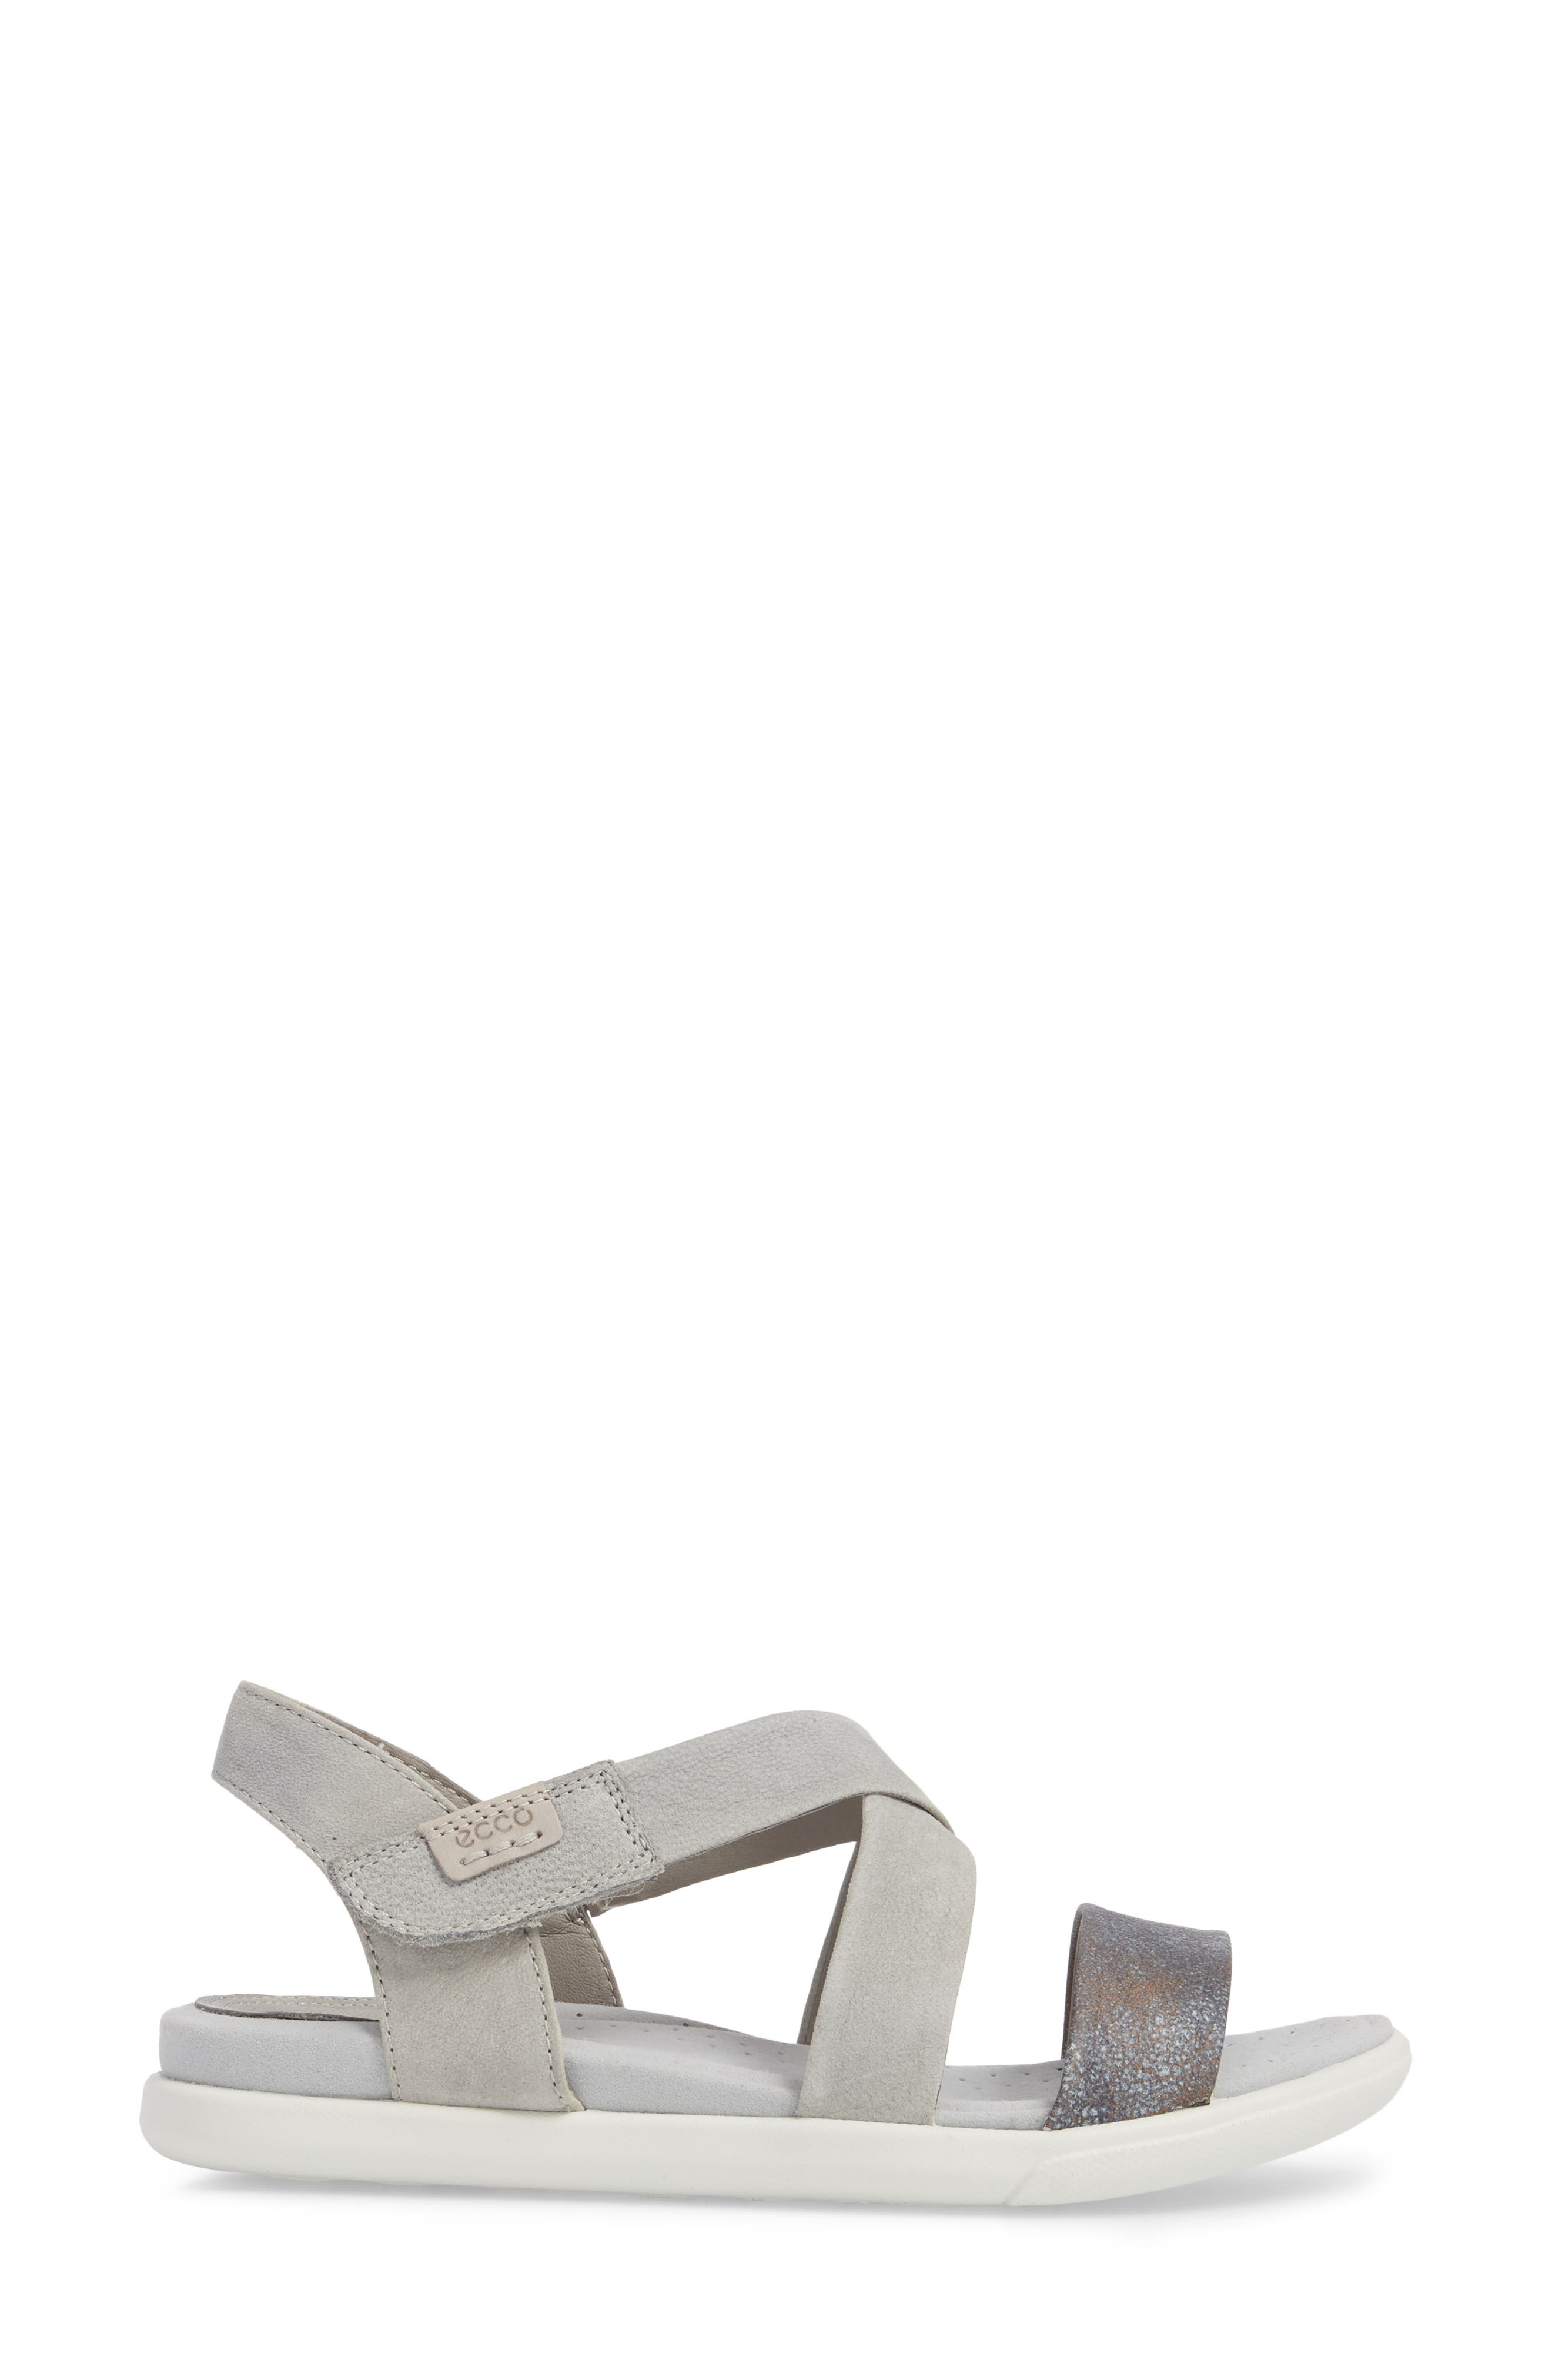 Damara Cross-Strap Sandal,                             Alternate thumbnail 16, color,